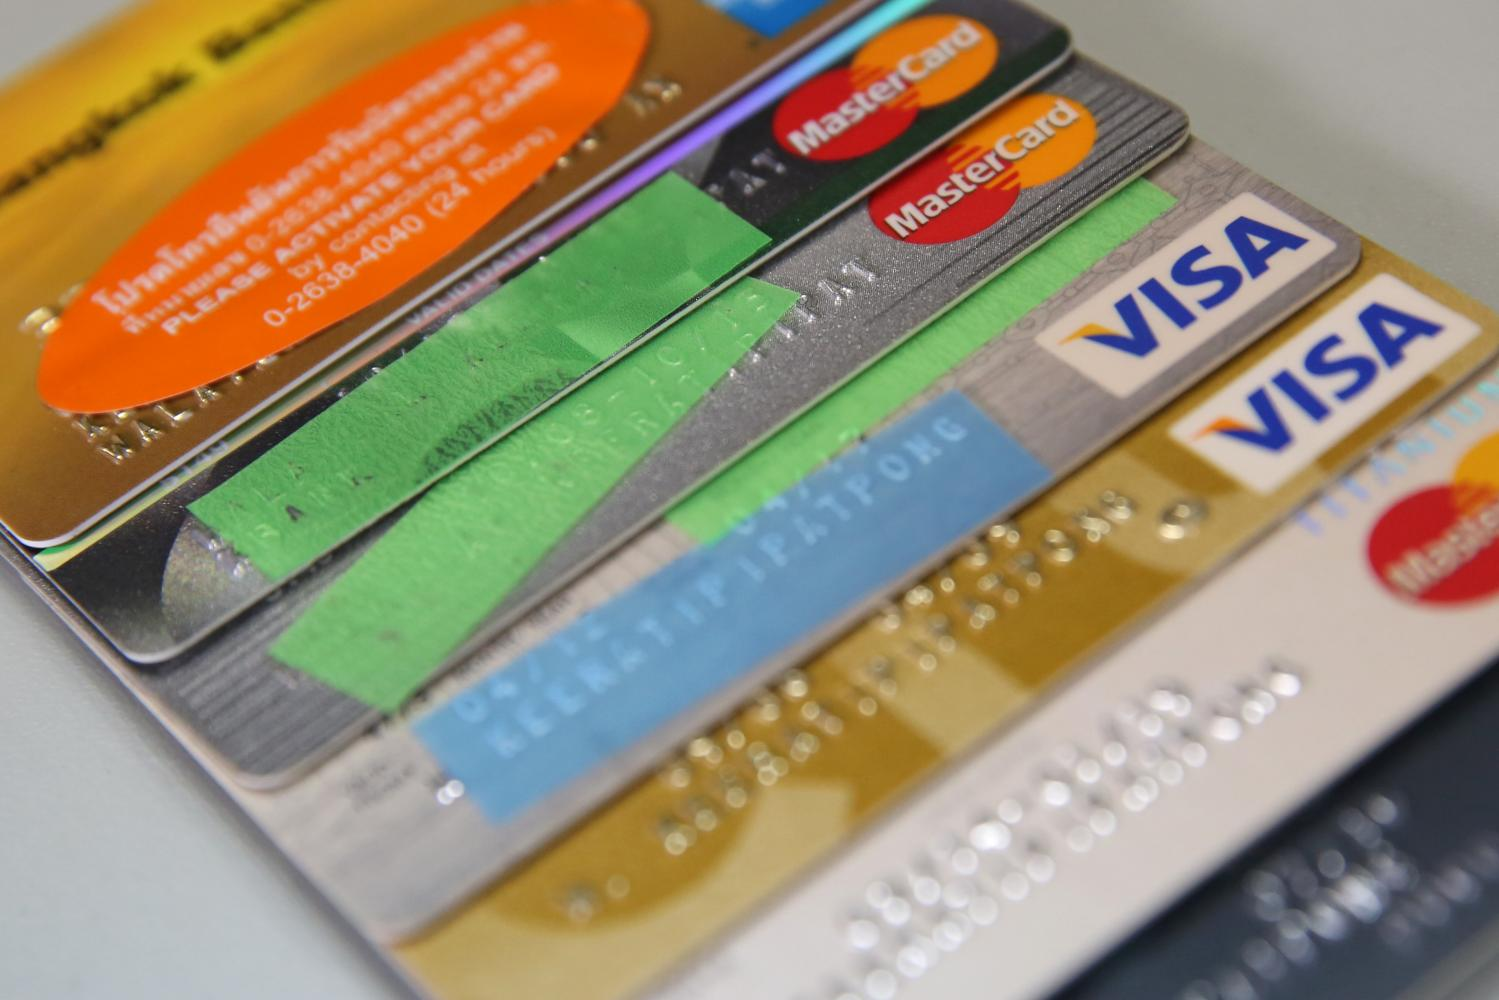 Banks have cut interest rates for credit cards to help millions of people facing financial stress. (Photo by Varuth Hirunyatheb)